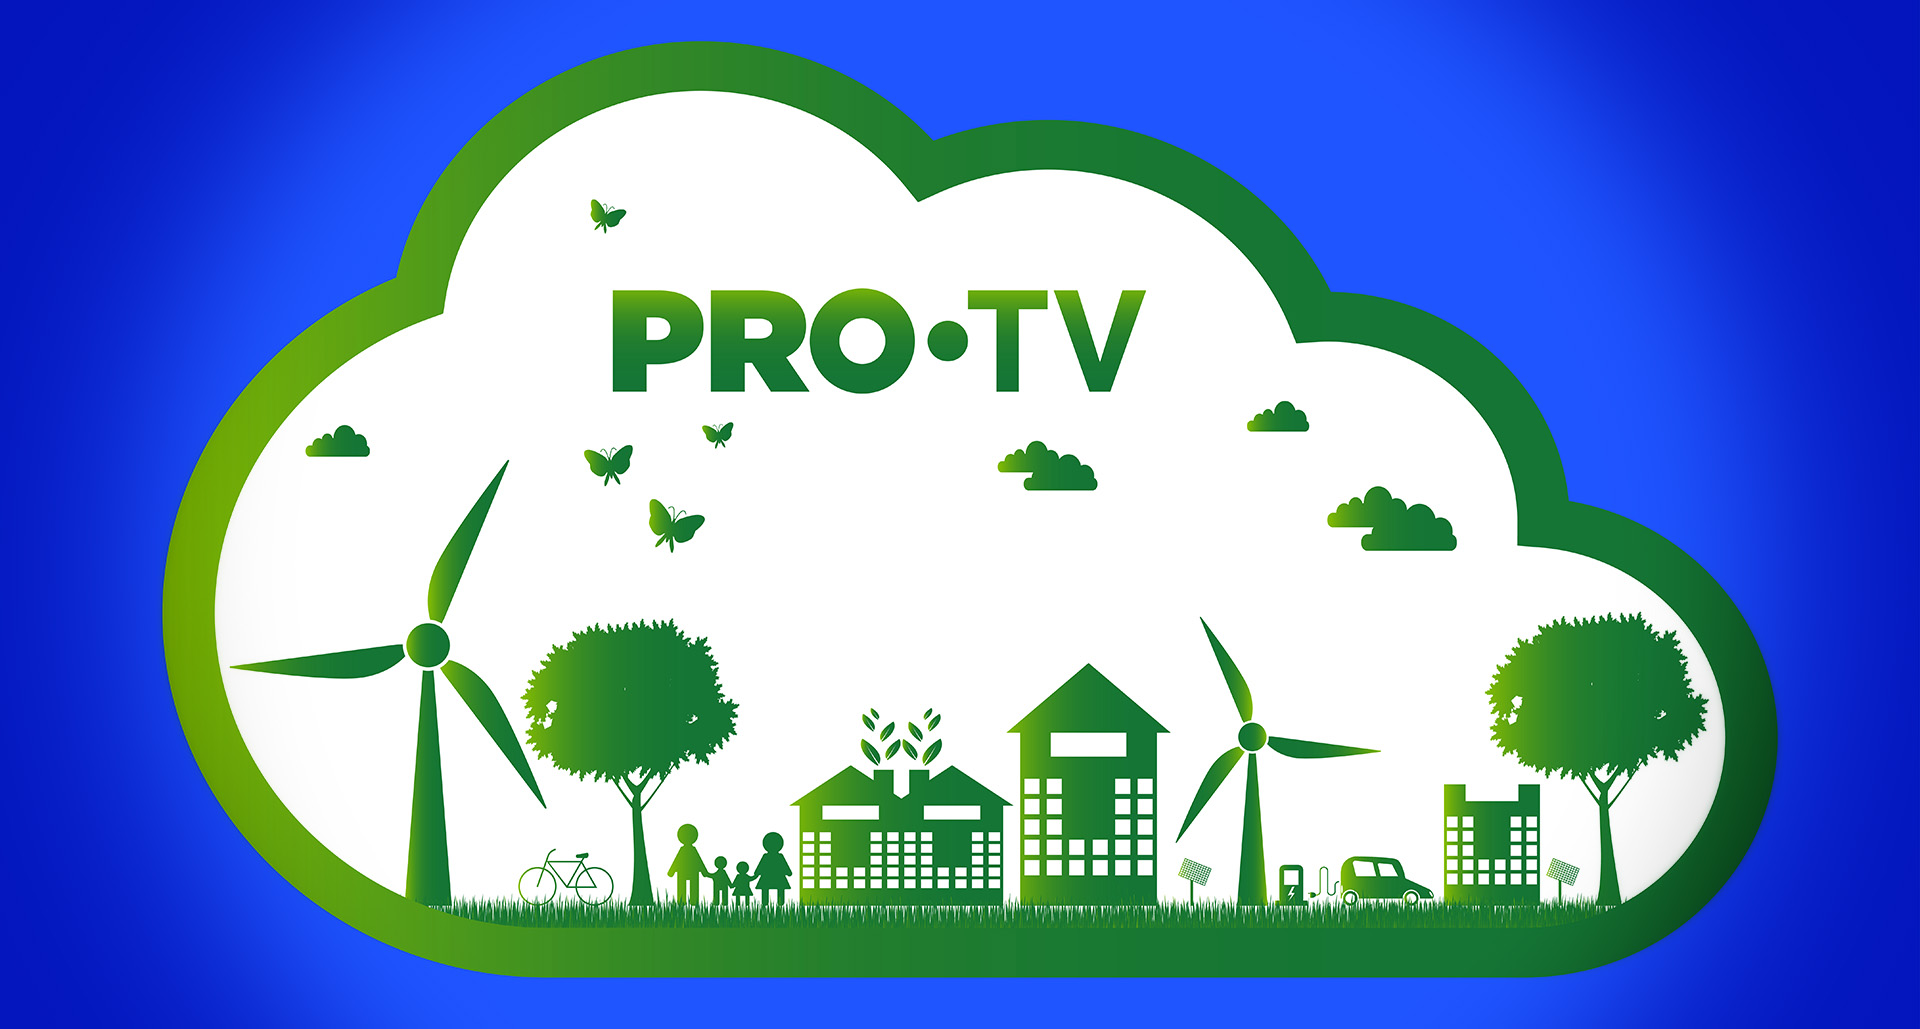 ecology concept.Green cities help the world with eco-friendly co